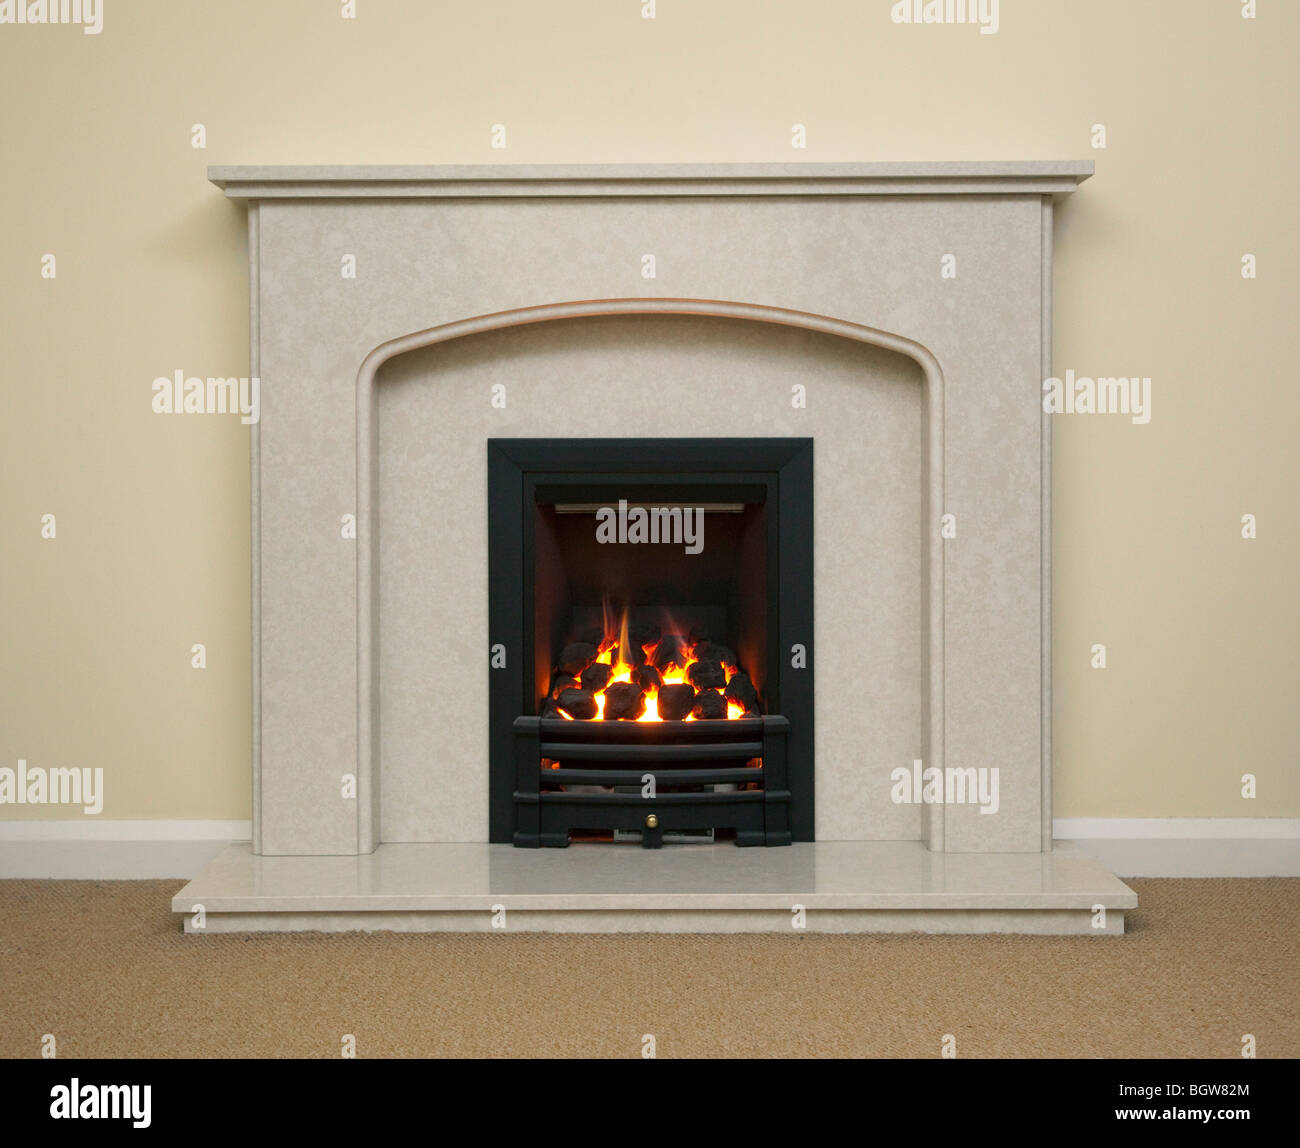 marble fireplace with gas fire flames - Stock Image